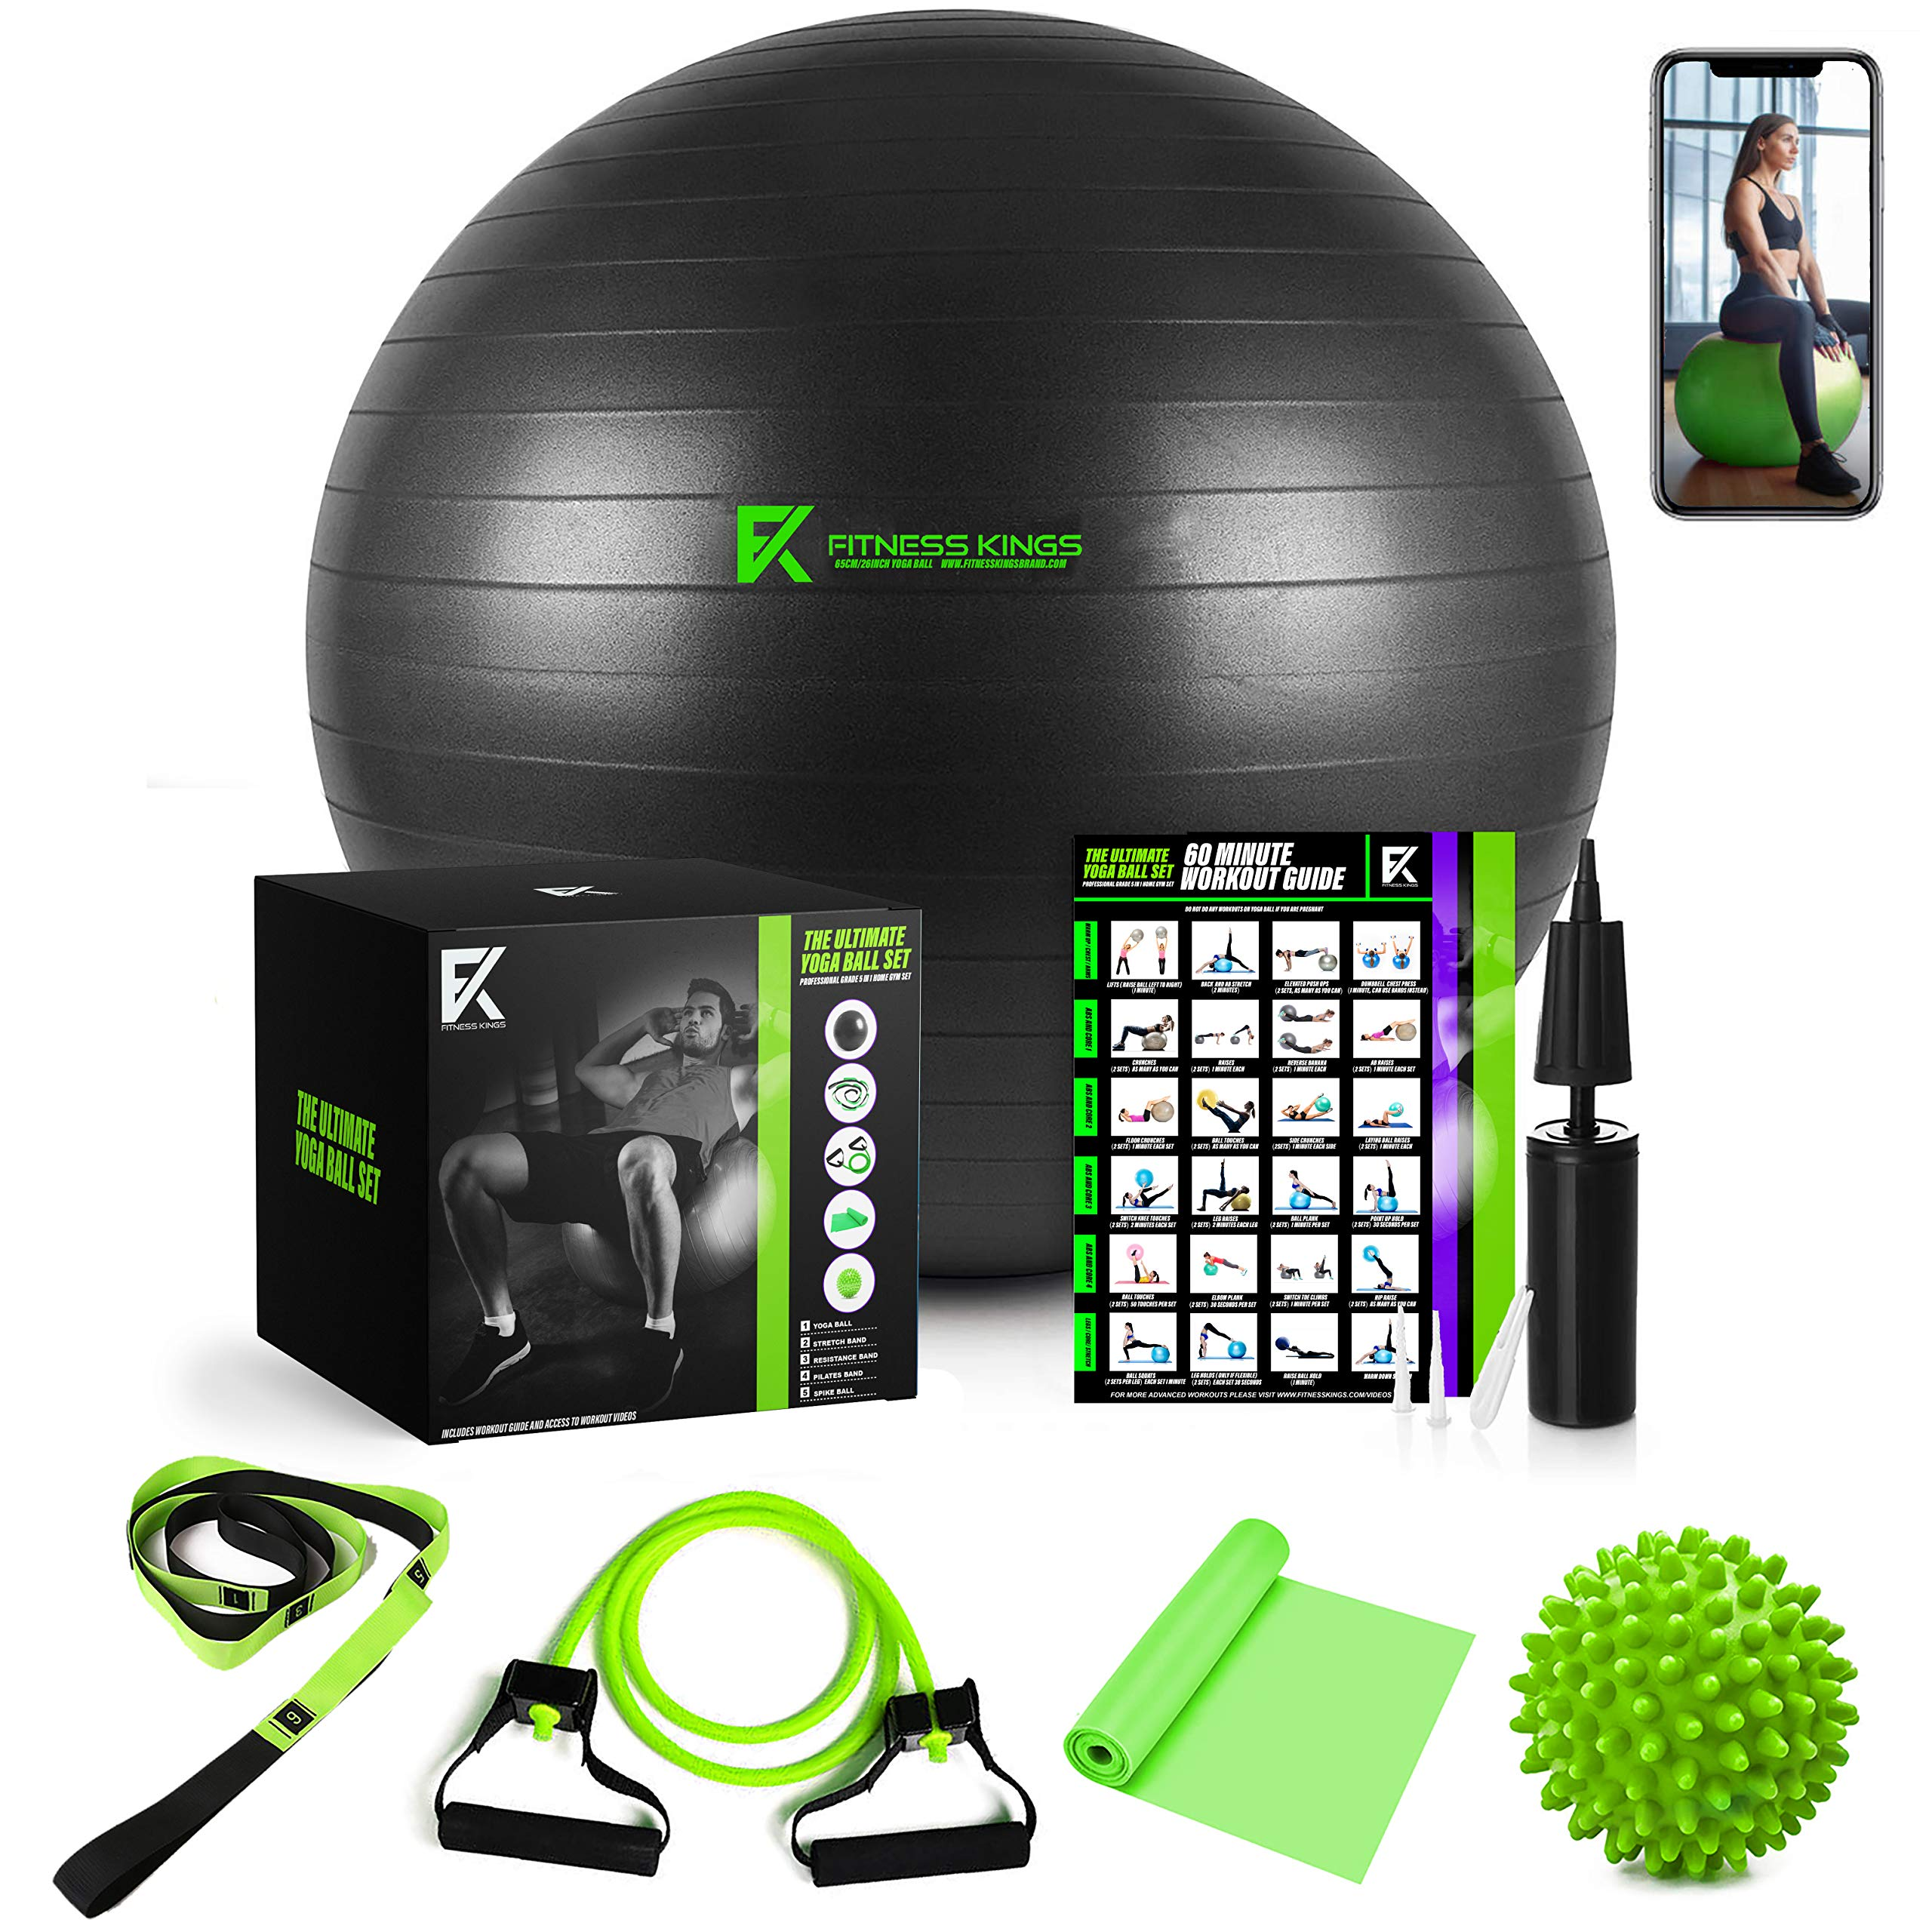 The Ultimate Yoga Ball Set - 5 in 1 Fitness Ball Set, Resistance Band, Pilates Band, Stretch Yoga Strap, and Spiky Massage Ball with Fitness Guide and Videos Swiss Ball by Fitness Kings Brand